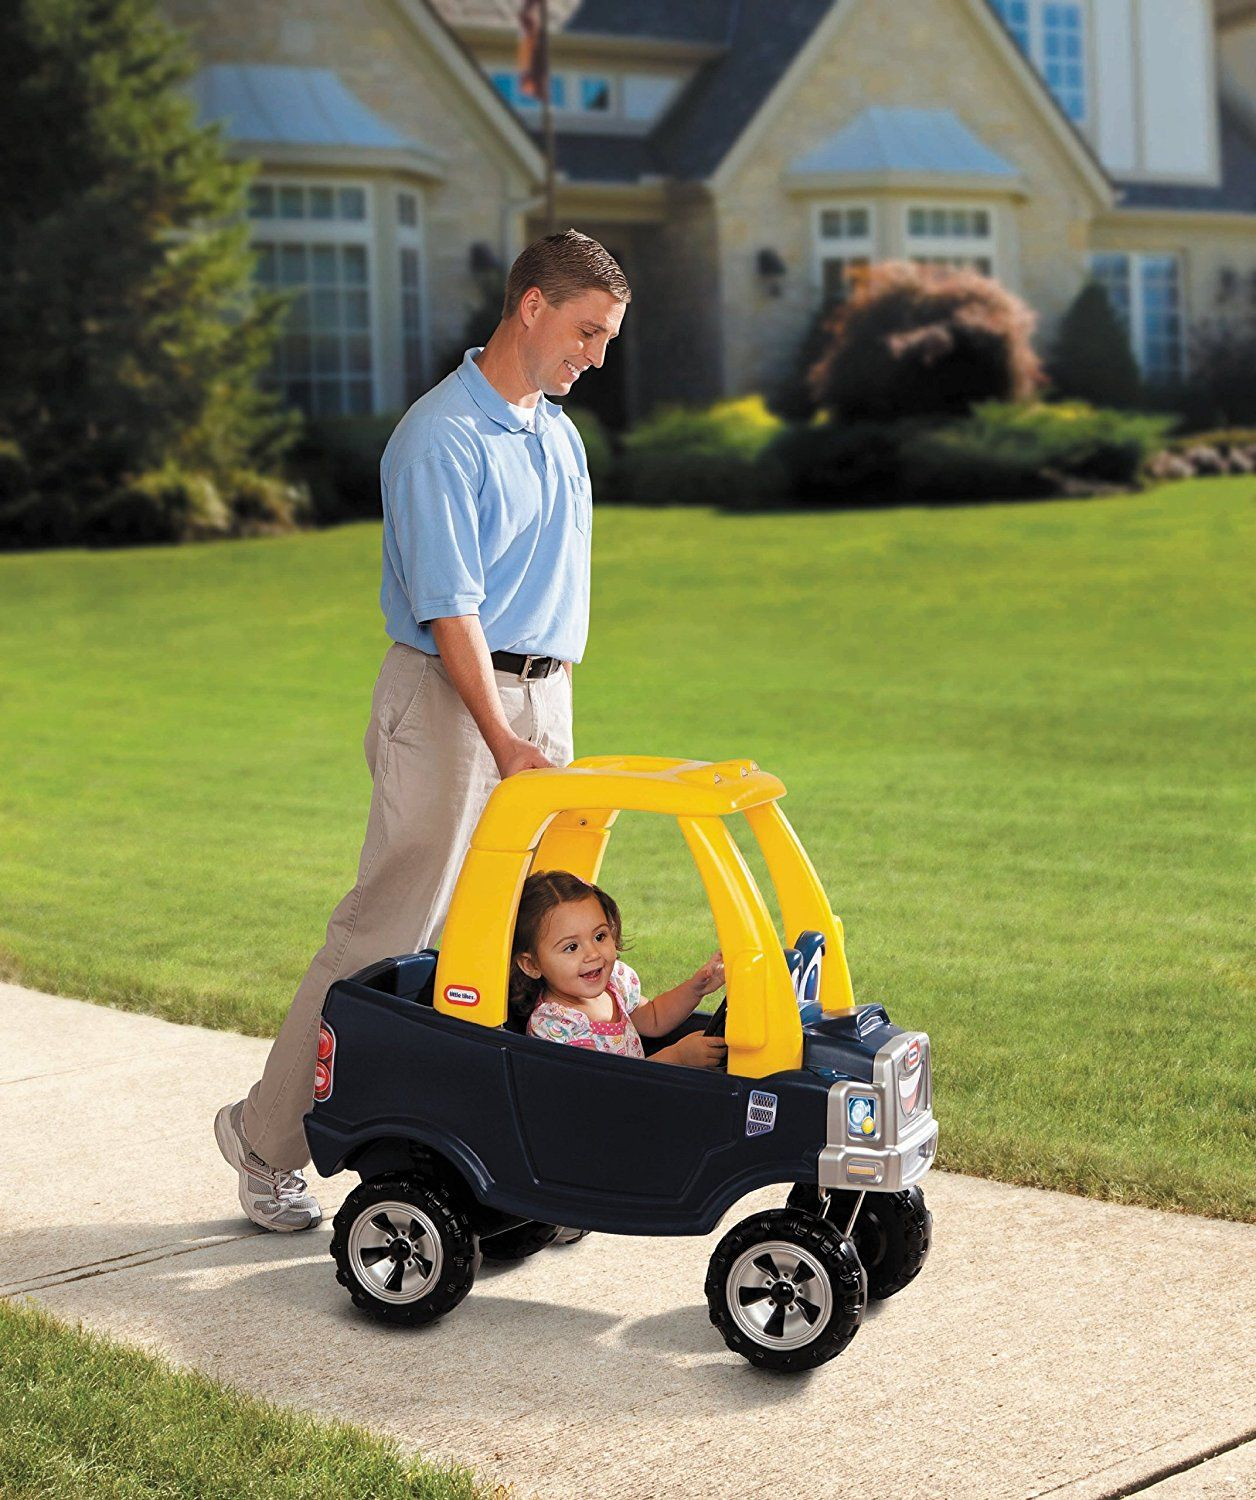 Little Tikes Cozy Truck Review Toddler car, Building for